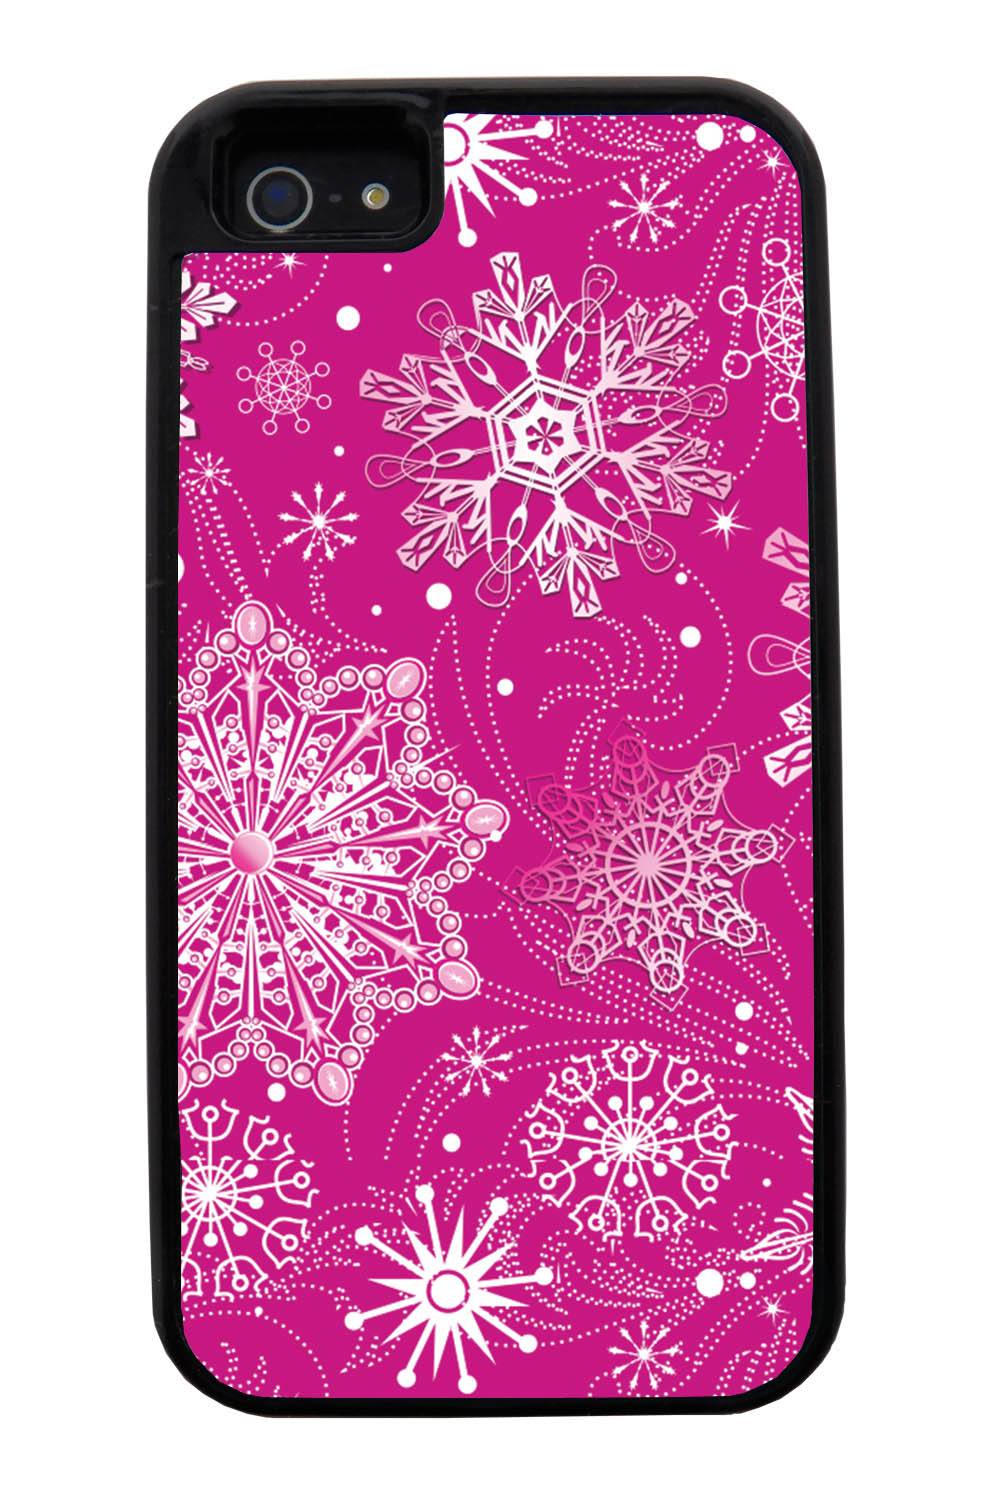 Apple iPhone 5 / 5S Pink Case - White Snowflakes on Hot Pink - Fall And Winter - Black Tough Hybrid Case